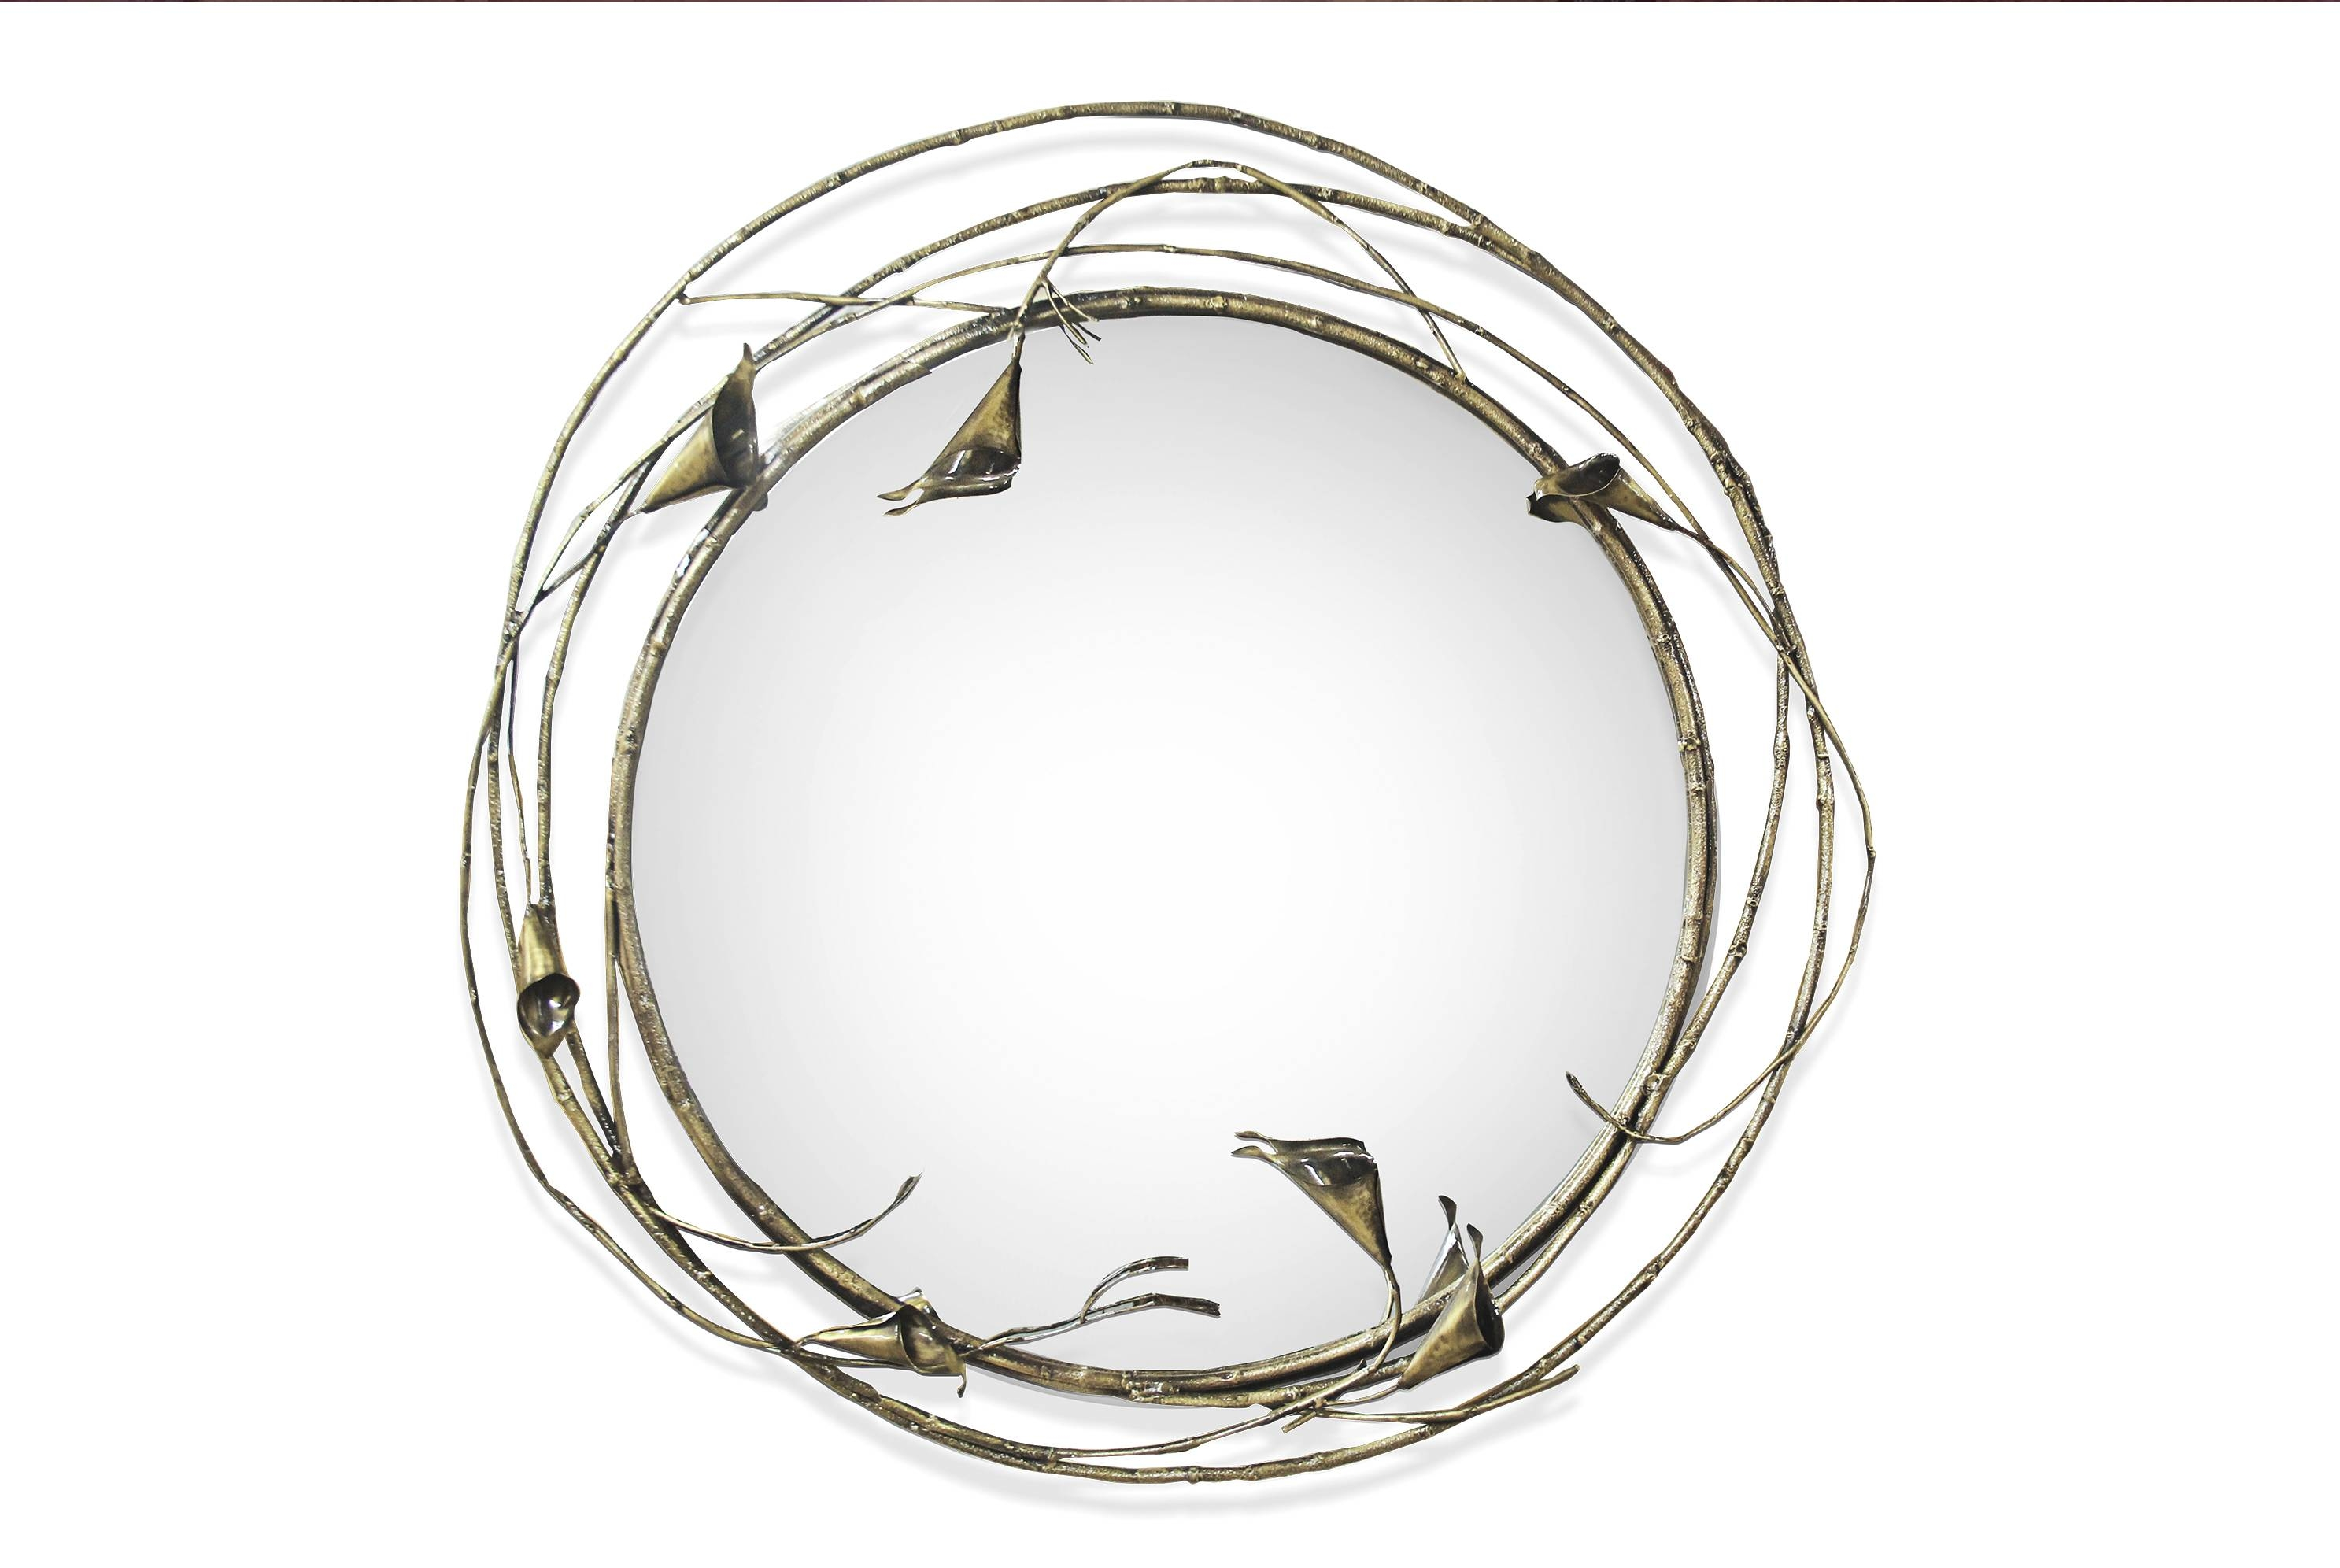 The Most Beautiful Round Mirror Designs For Living Room Inside Designer Round Mirrors (View 24 of 25)